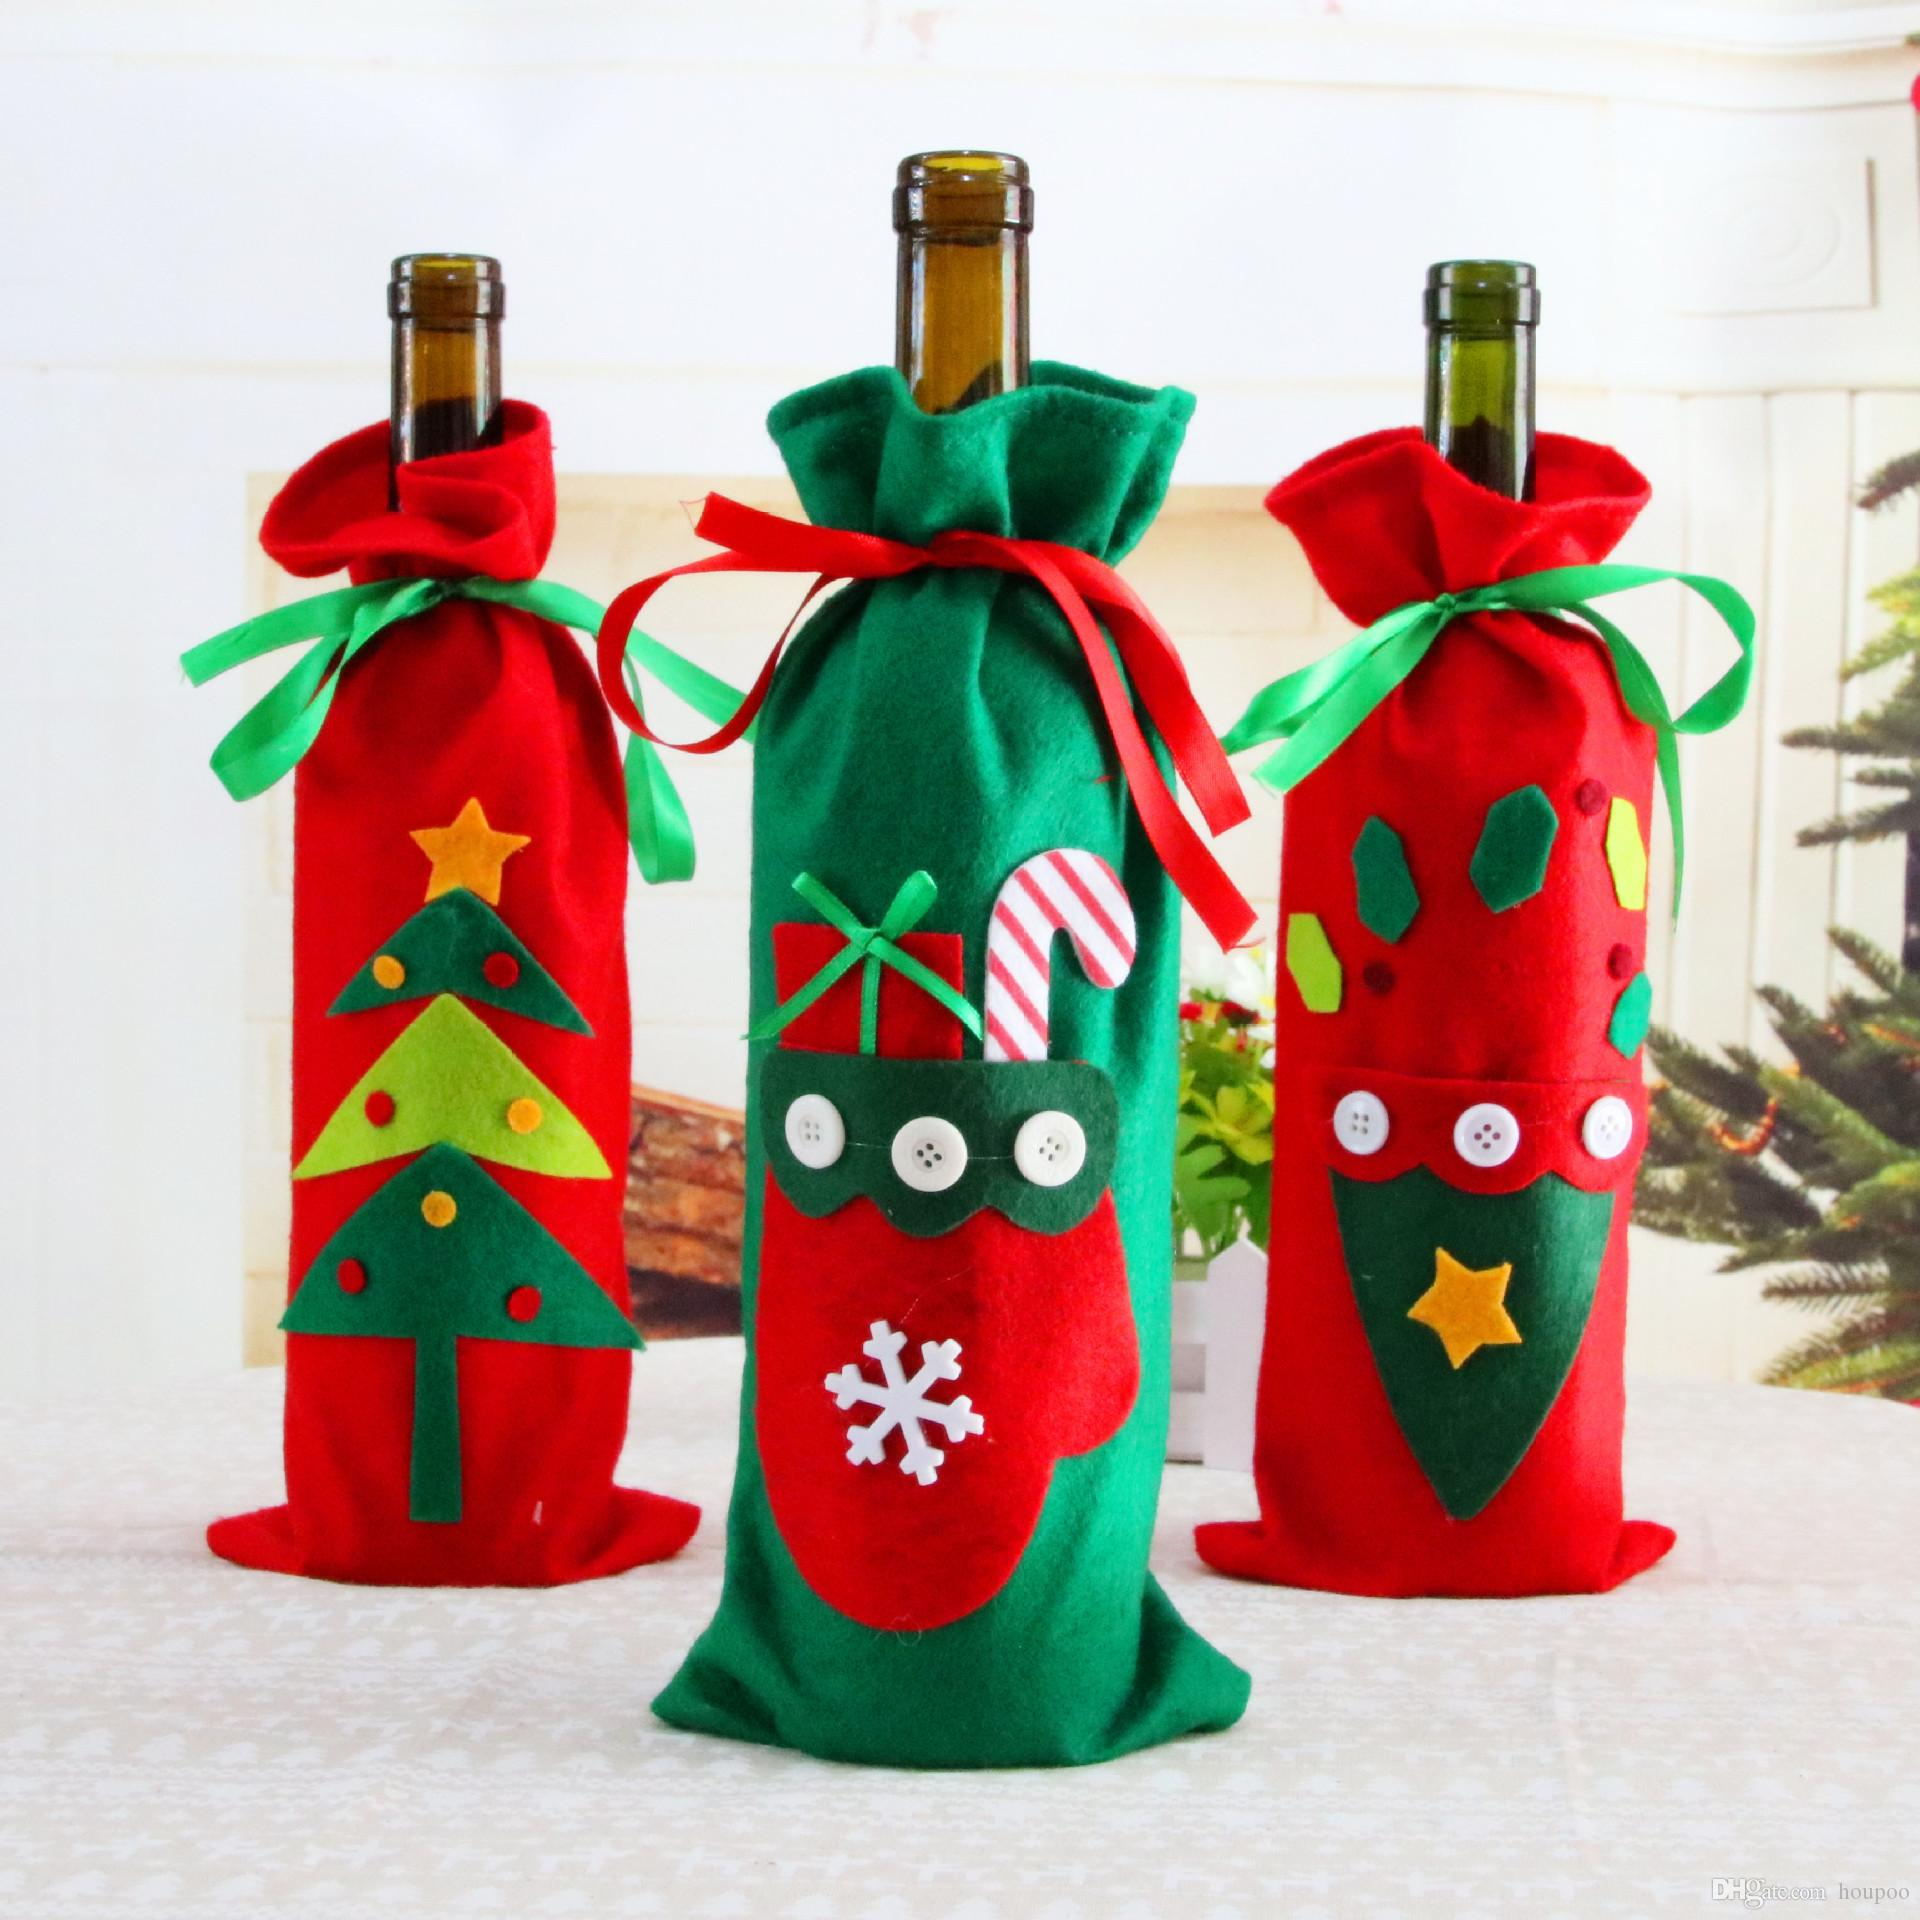 christmas tableware santa claus fabric 3 styles ornaments xmas wine bottle cover bag dinner party table decor designer christmas decorations discount - Designer Christmas Decorations